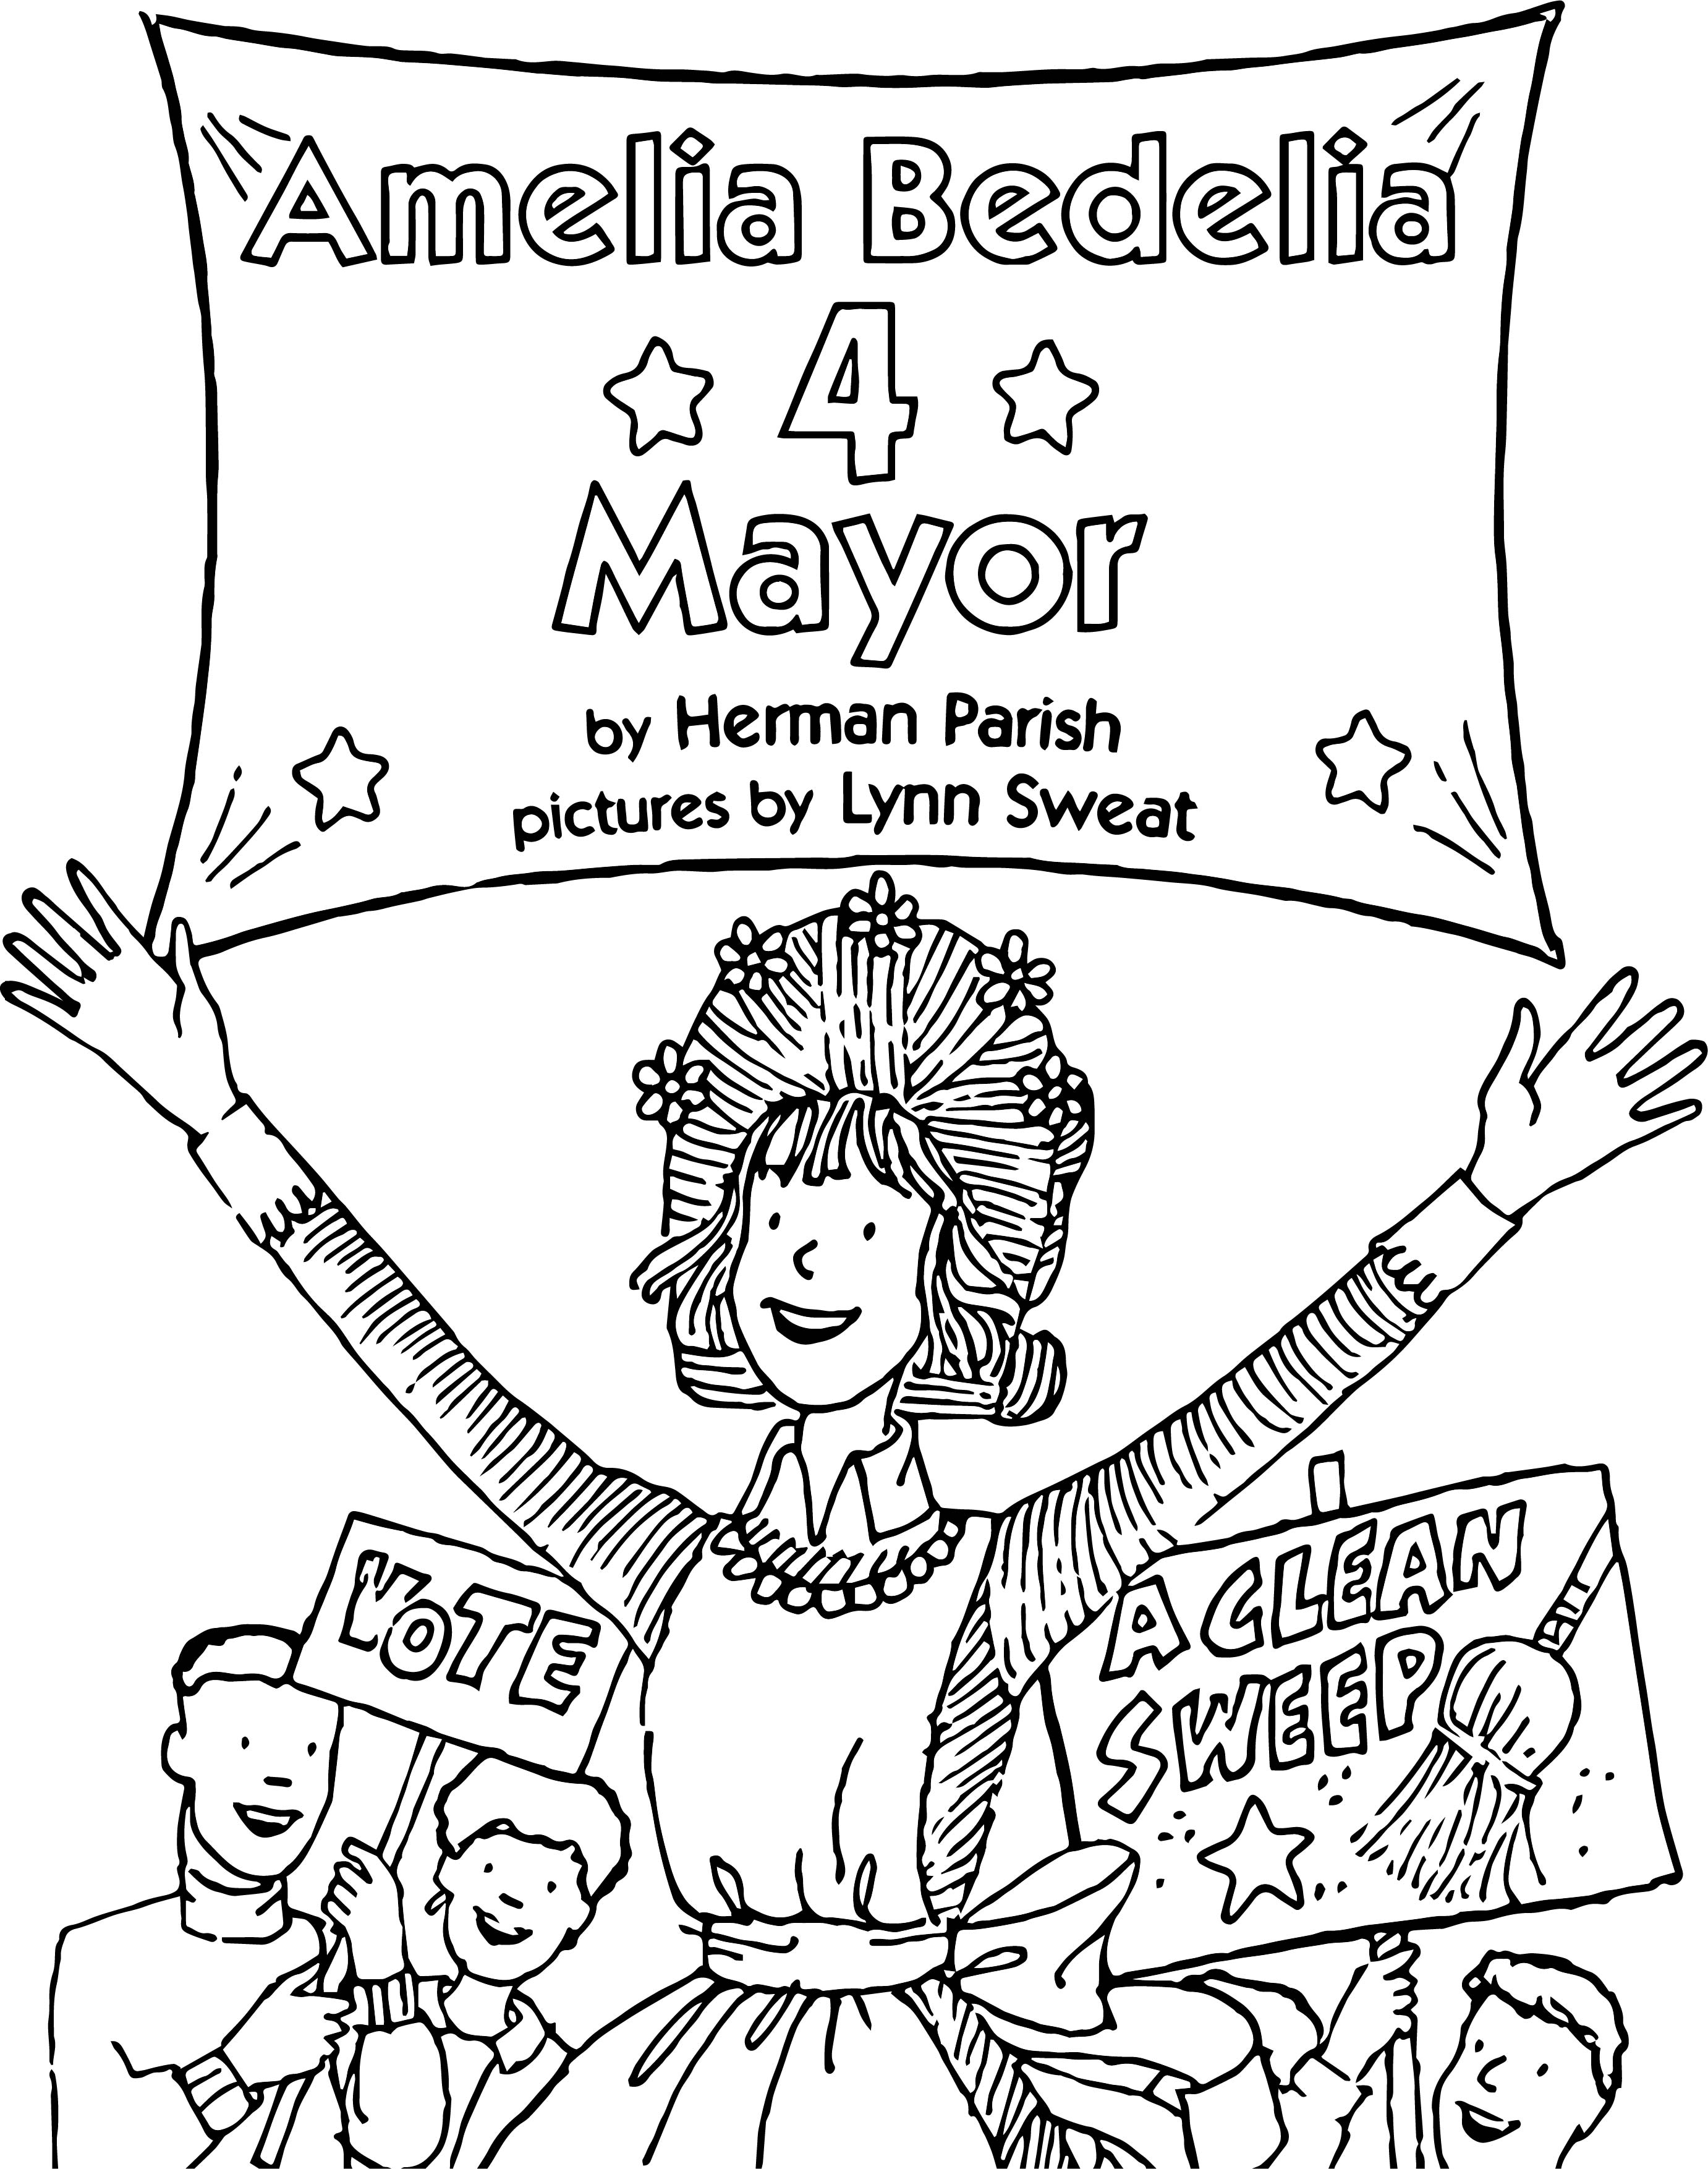 Uncategorized Amelia Bedelia Coloring Pages amelia bedelia mayor coloring page wecoloringpage page